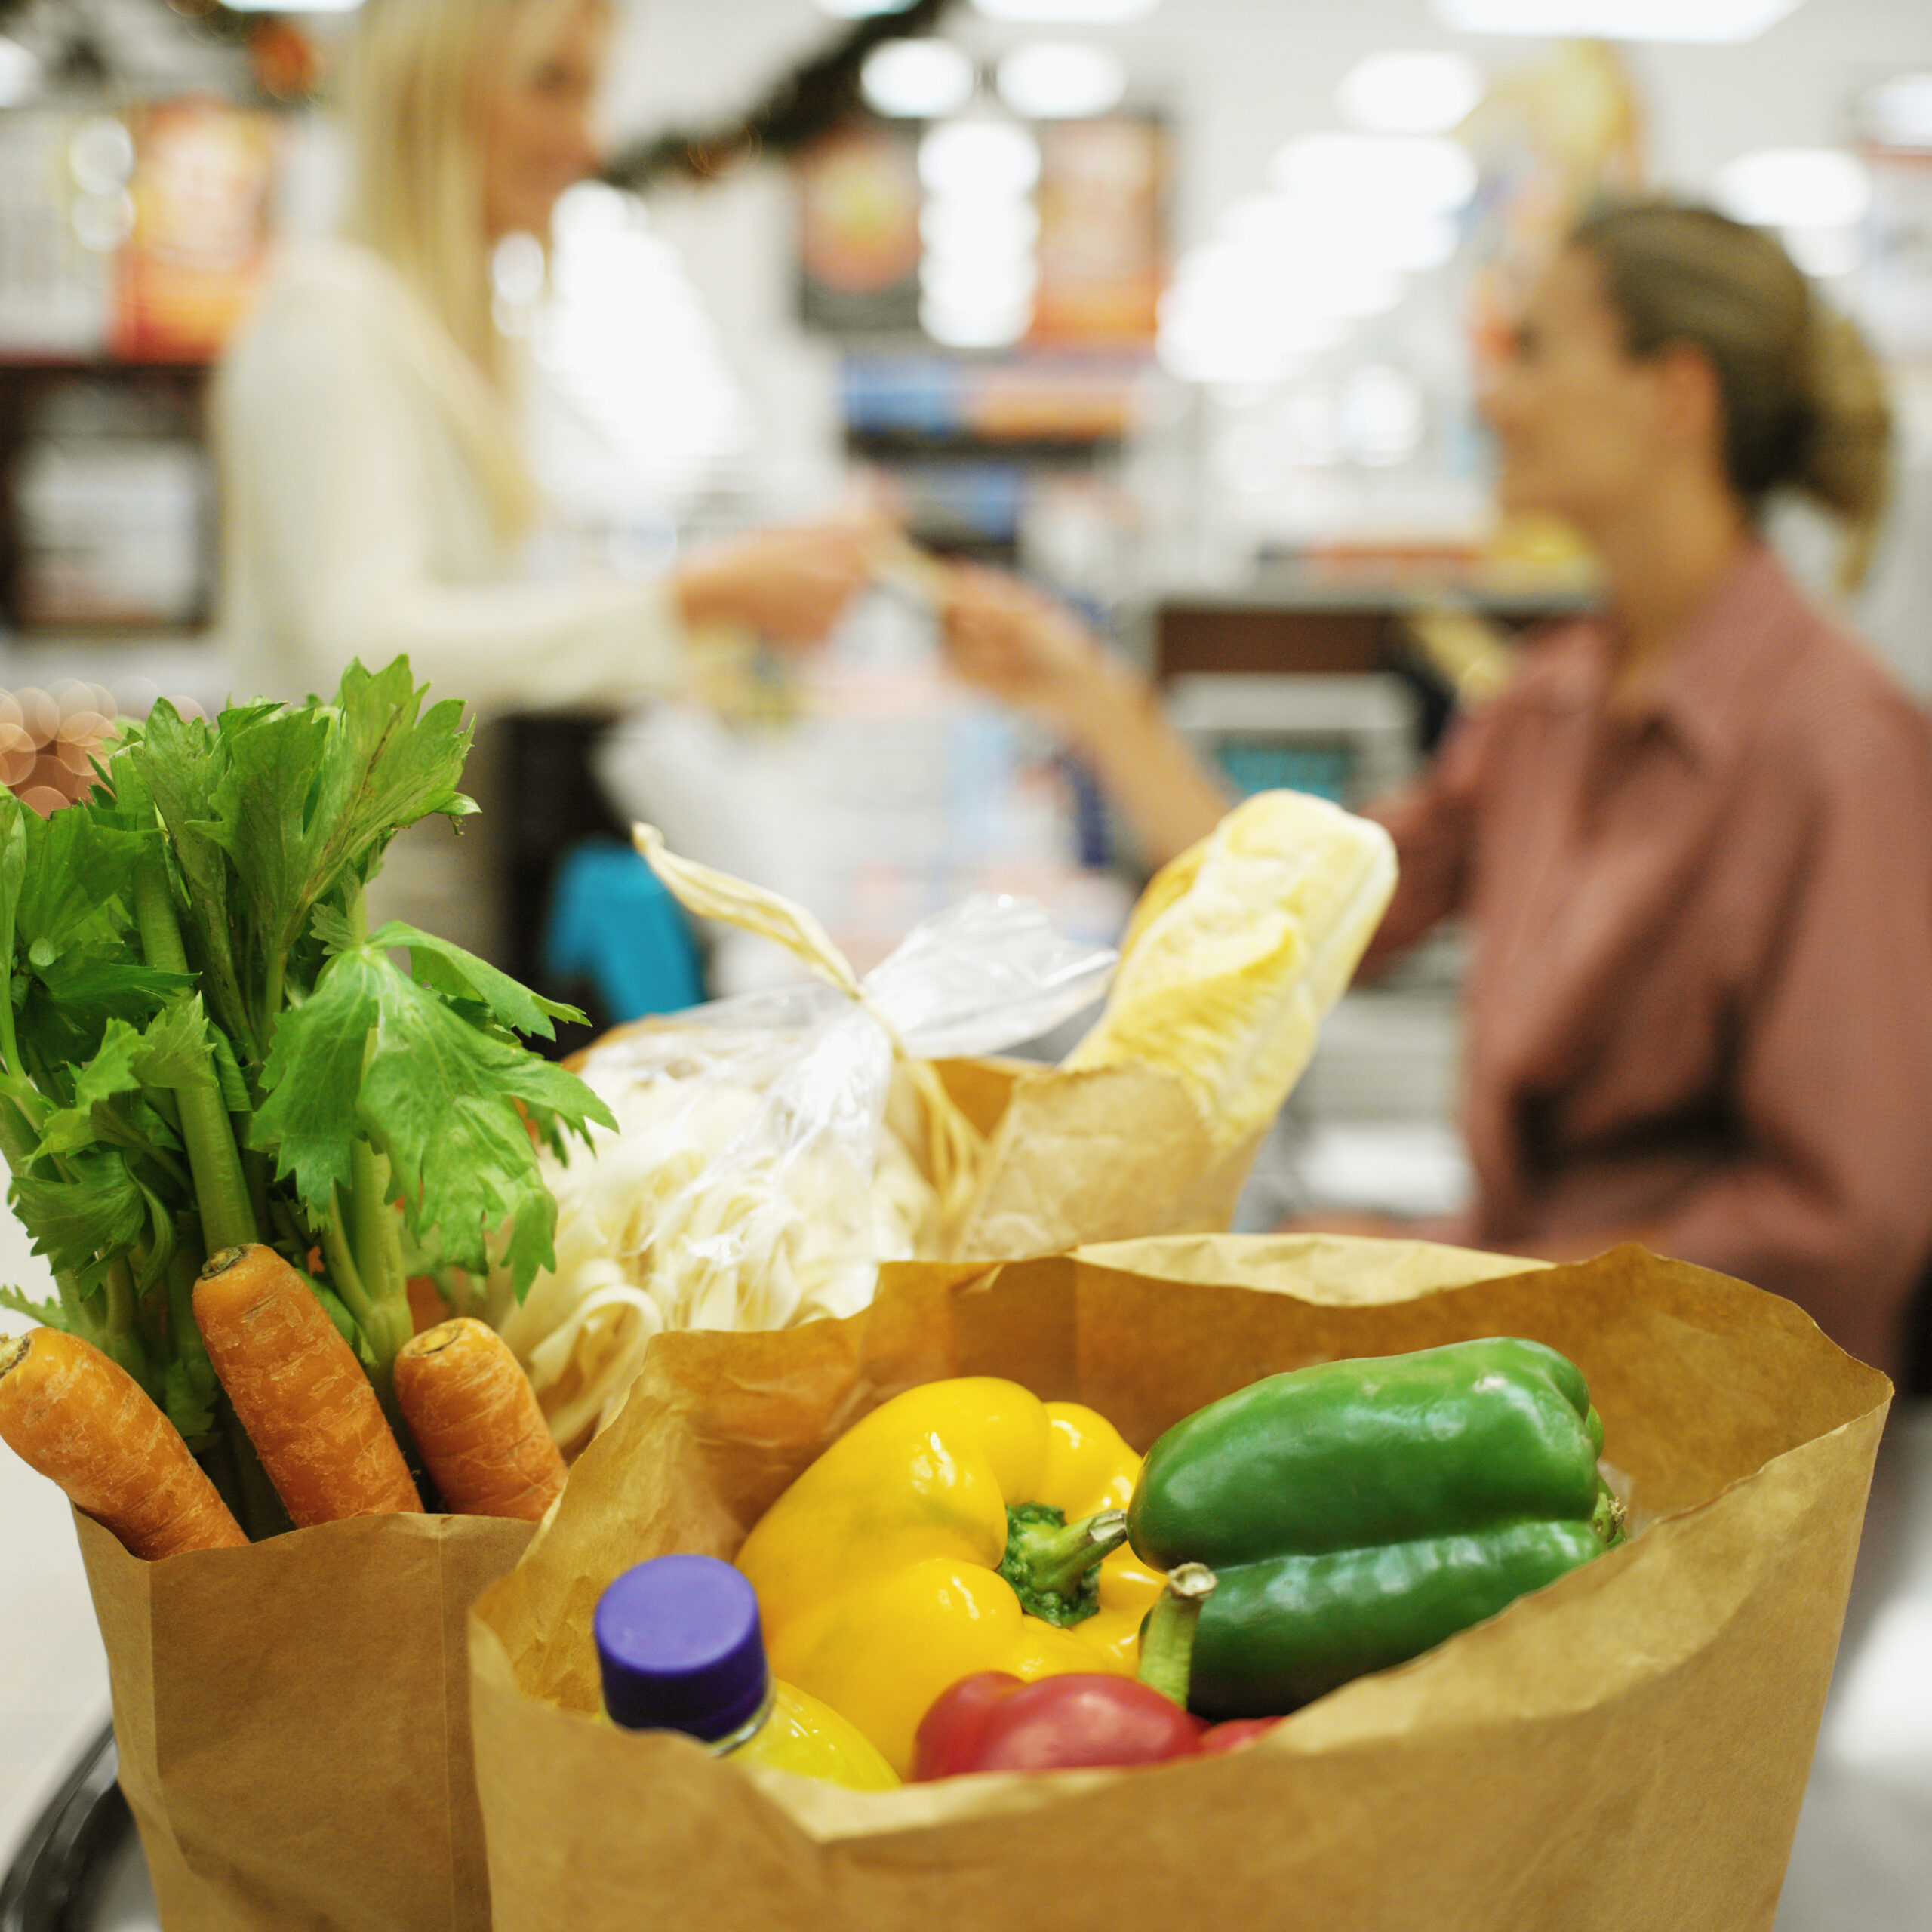 Quantum-techniques-blog-produce-in-grocery-store-shopping-bag